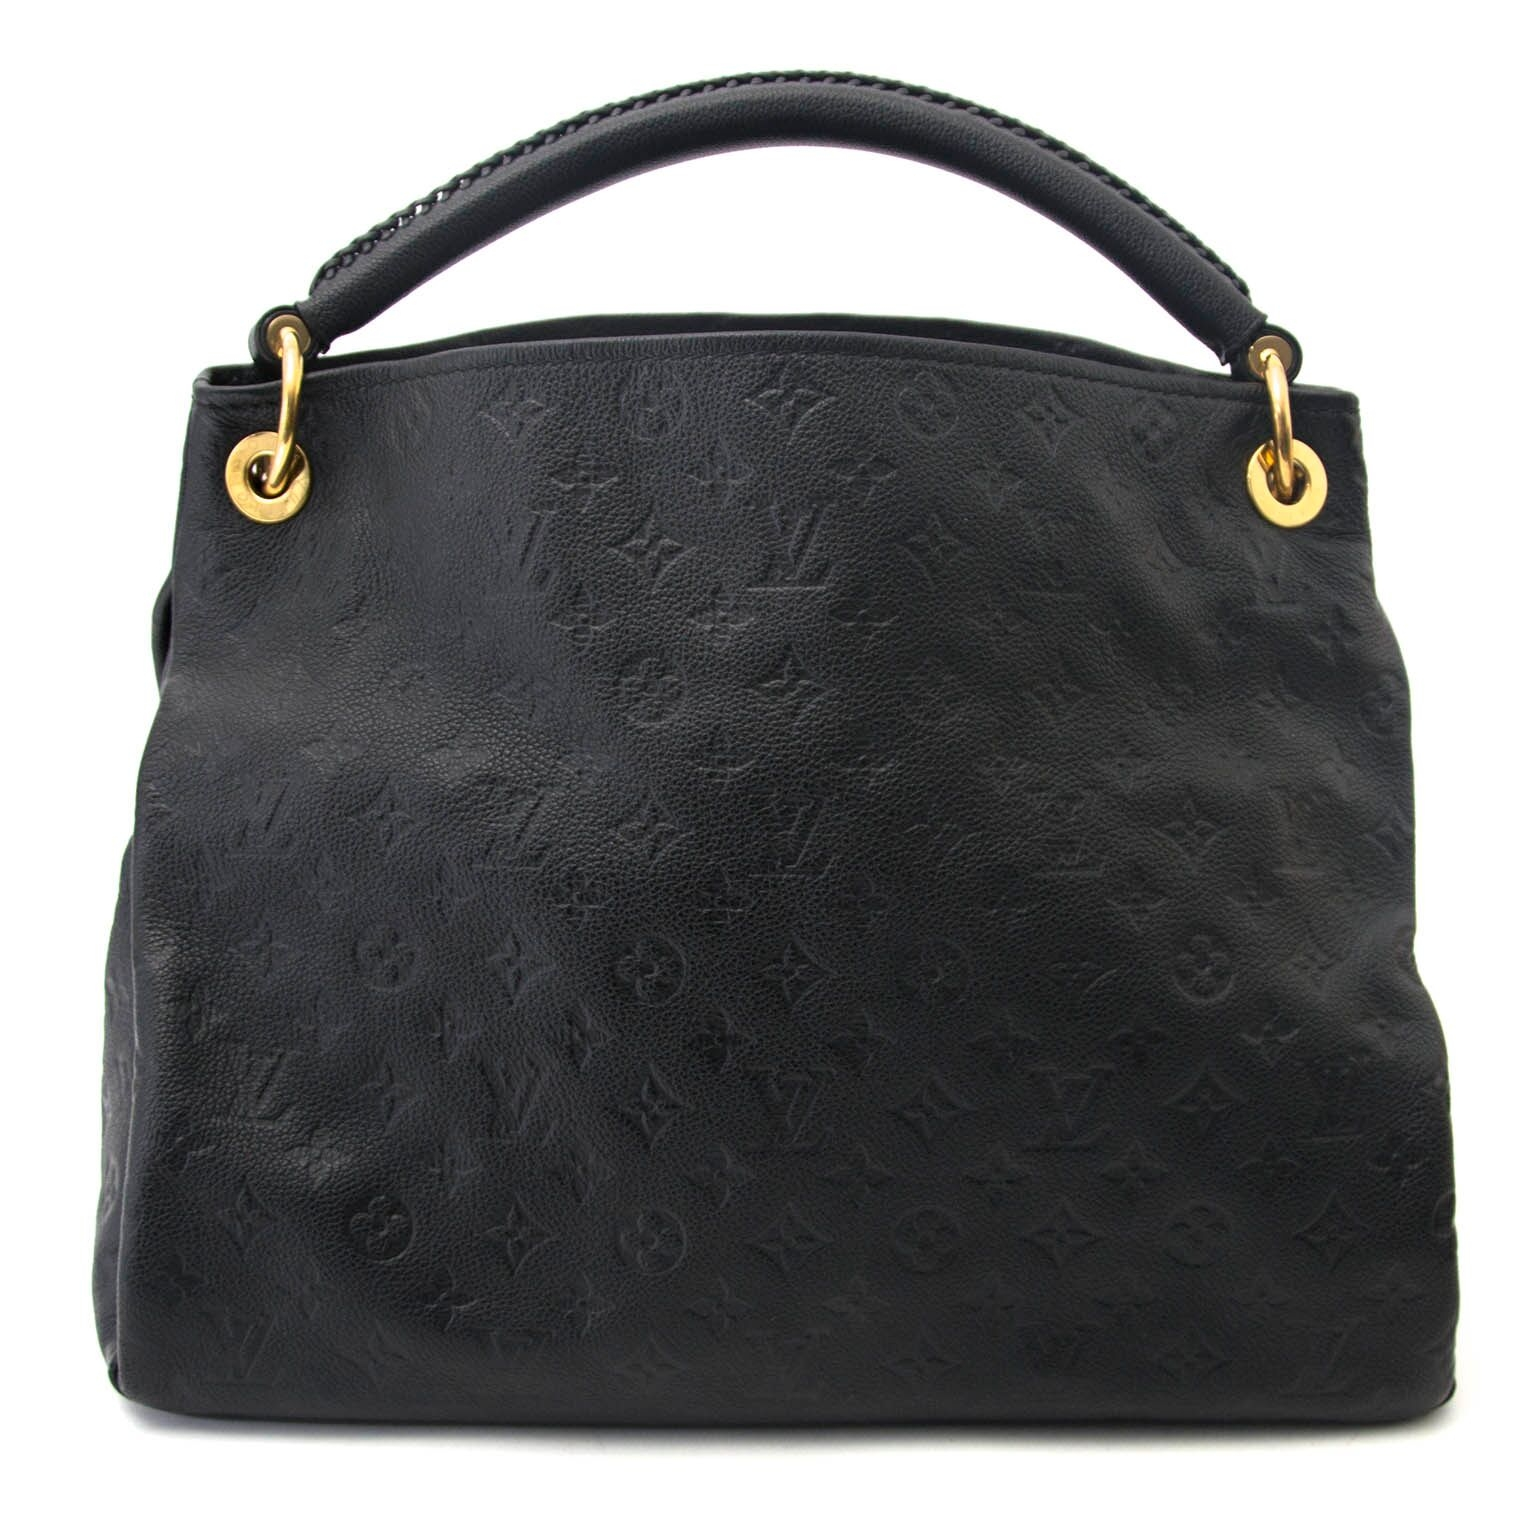 ... buy secondhand Louis Vuitton Black Leather Artsy MM at labellov 2aab92dfe6624